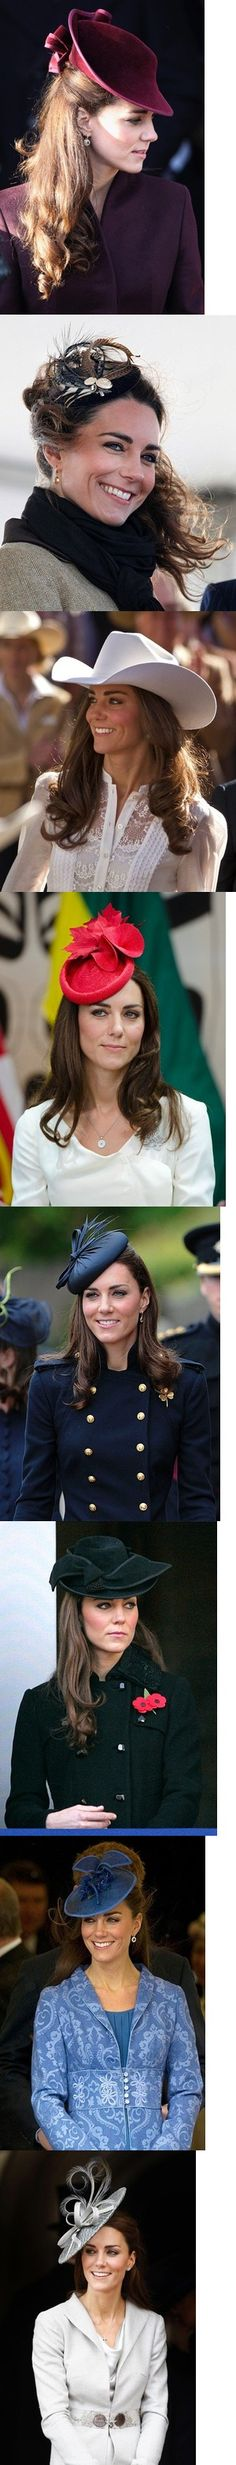 Which of Duchess Kate Middleton's hats do you like?